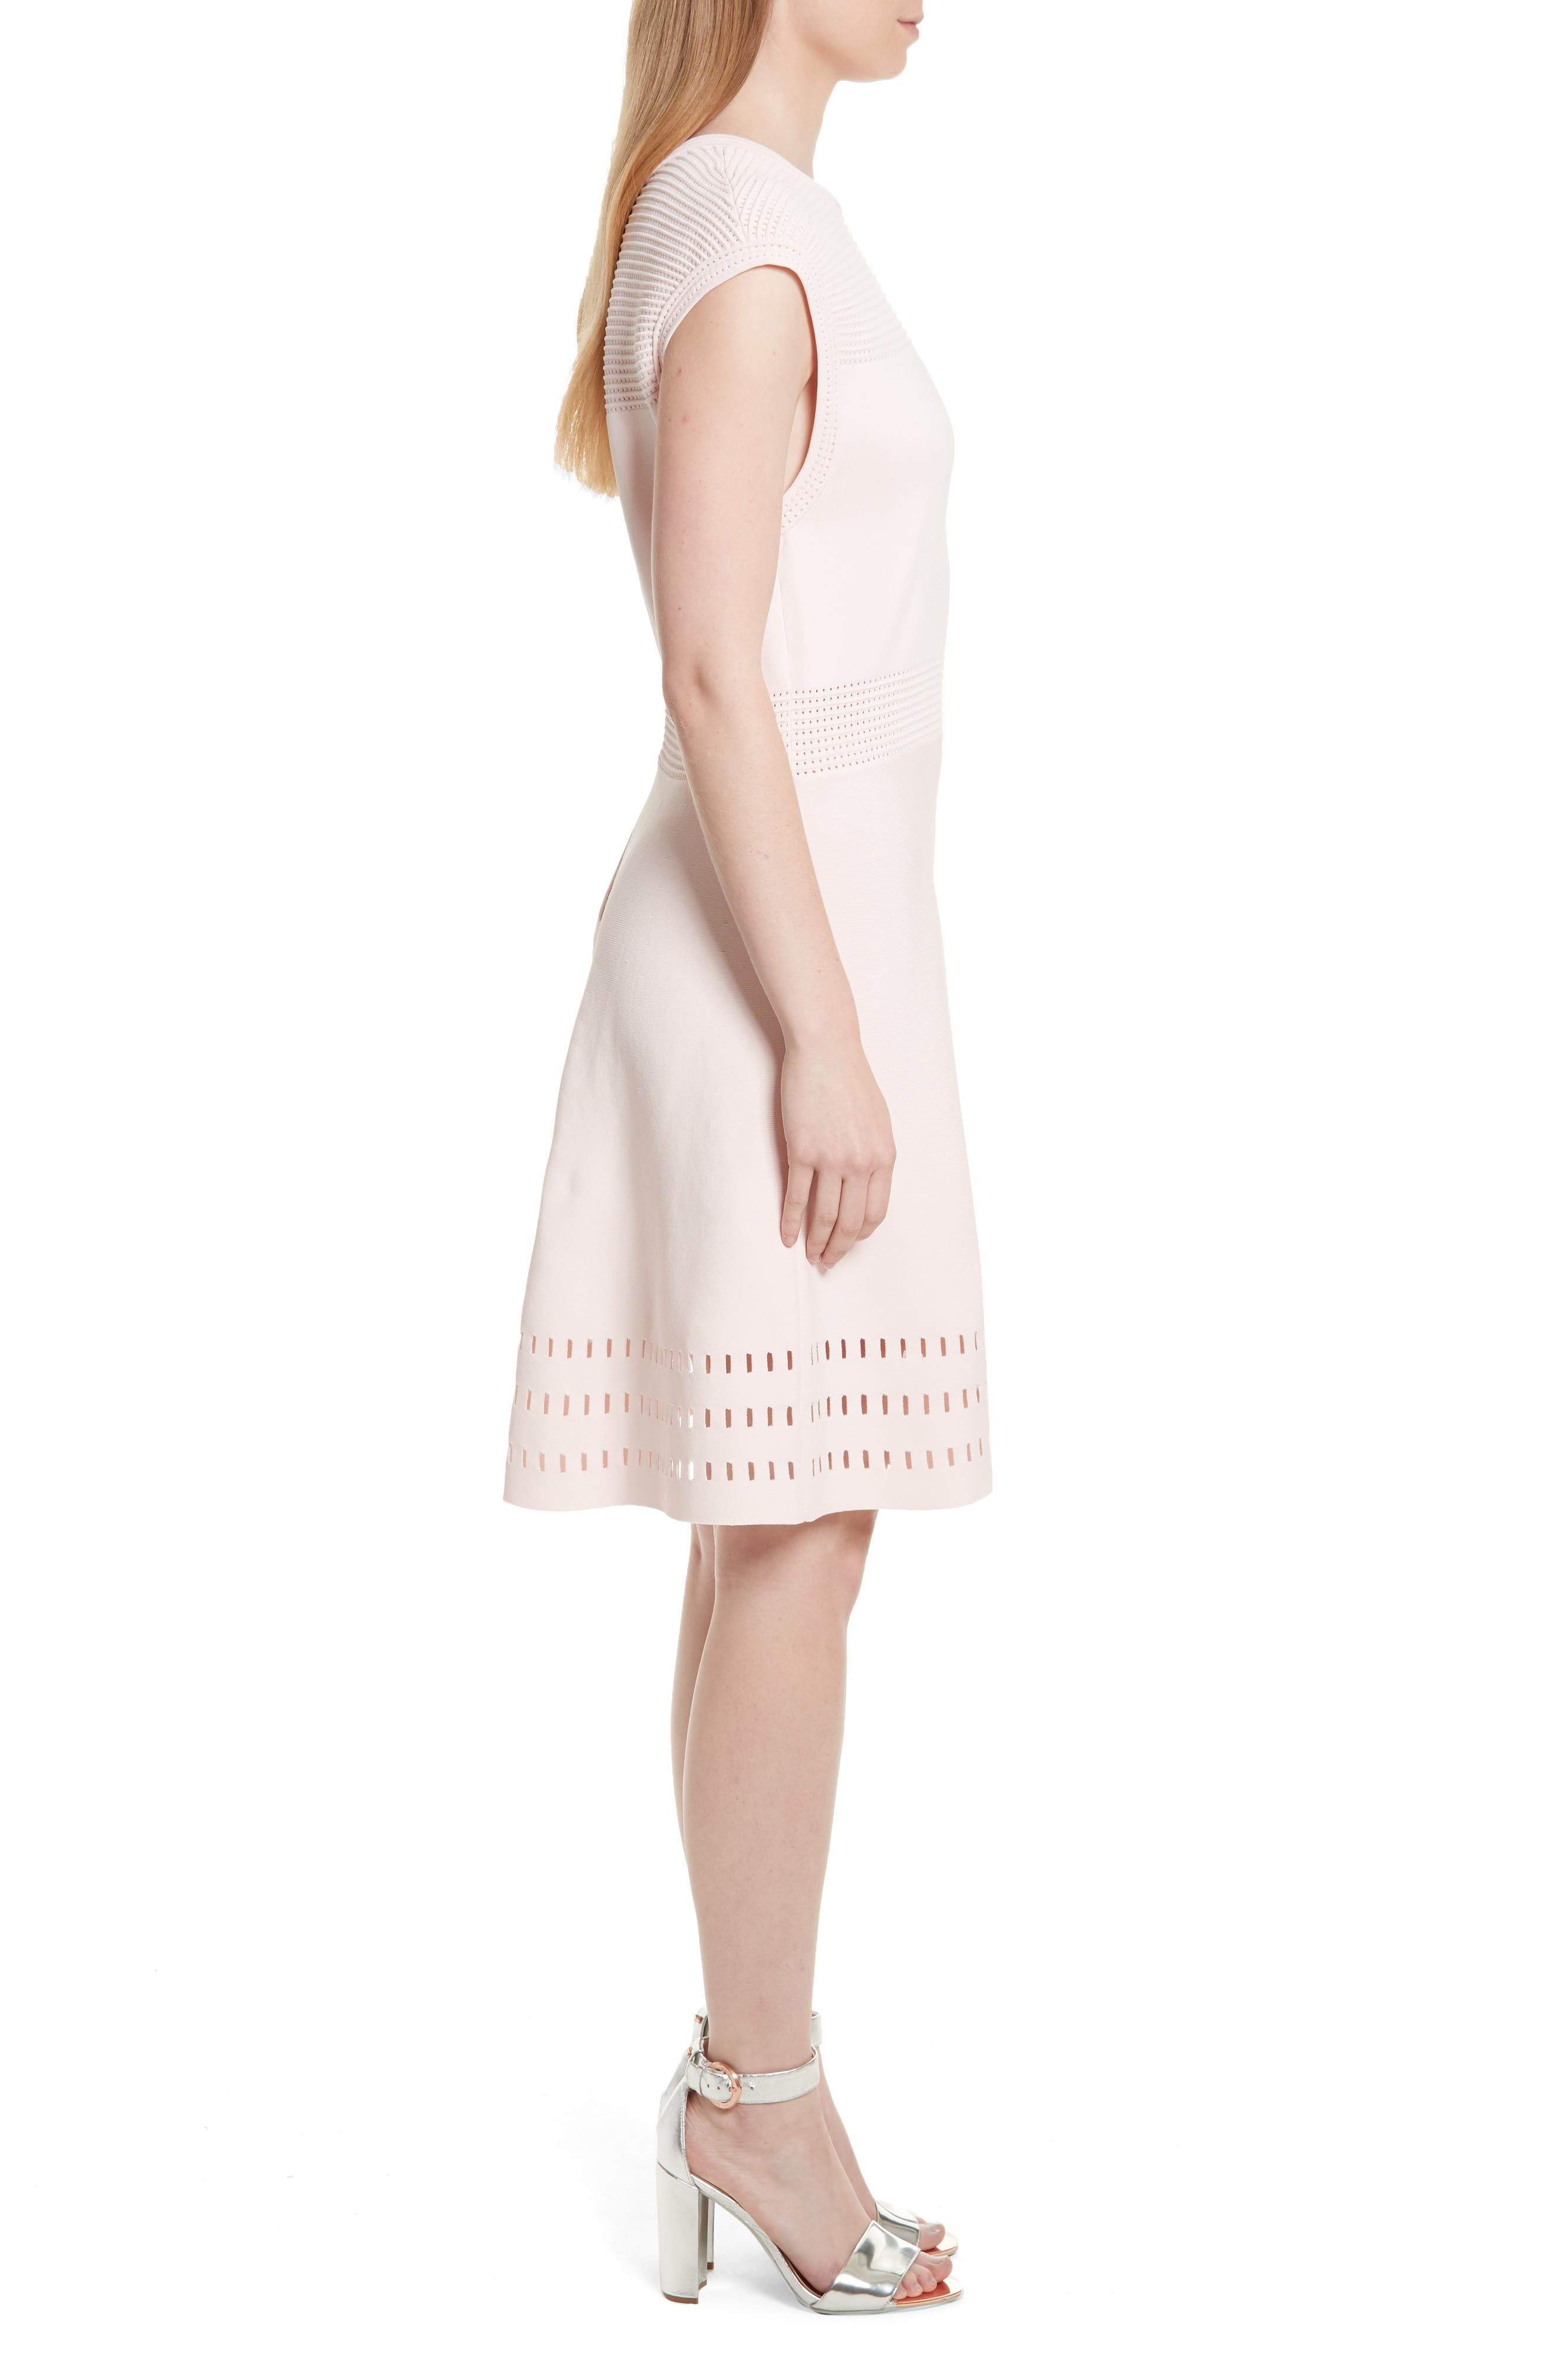 Aurbray Knit Skater Dress,                             Alternate thumbnail 3, color,                             Nude Pink